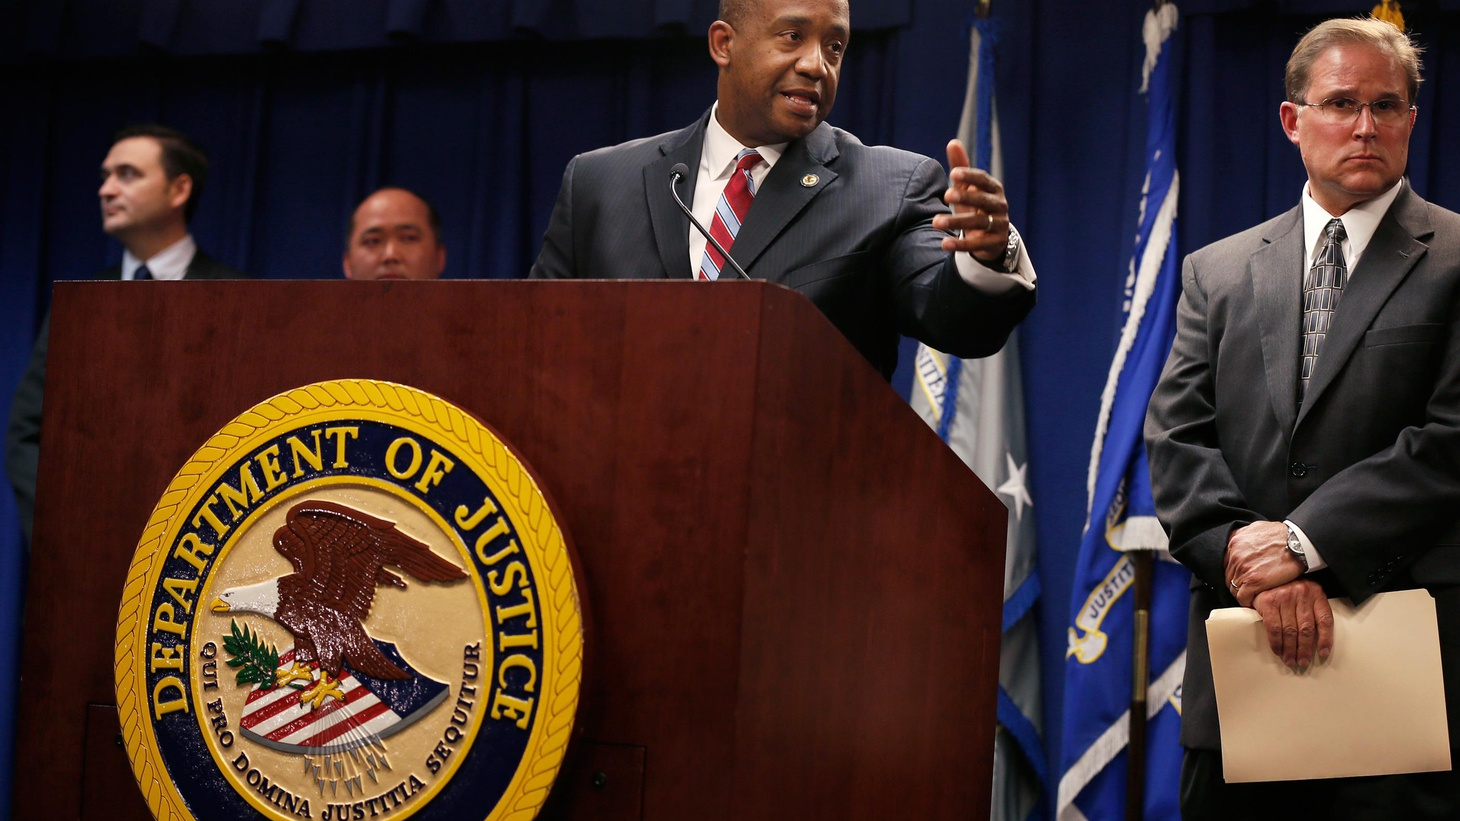 Federal authorities have indicted arrested 17 deputies. They're accused of corruption and civil rights abuses at downtown jails. Even visitors allegedly were abused.